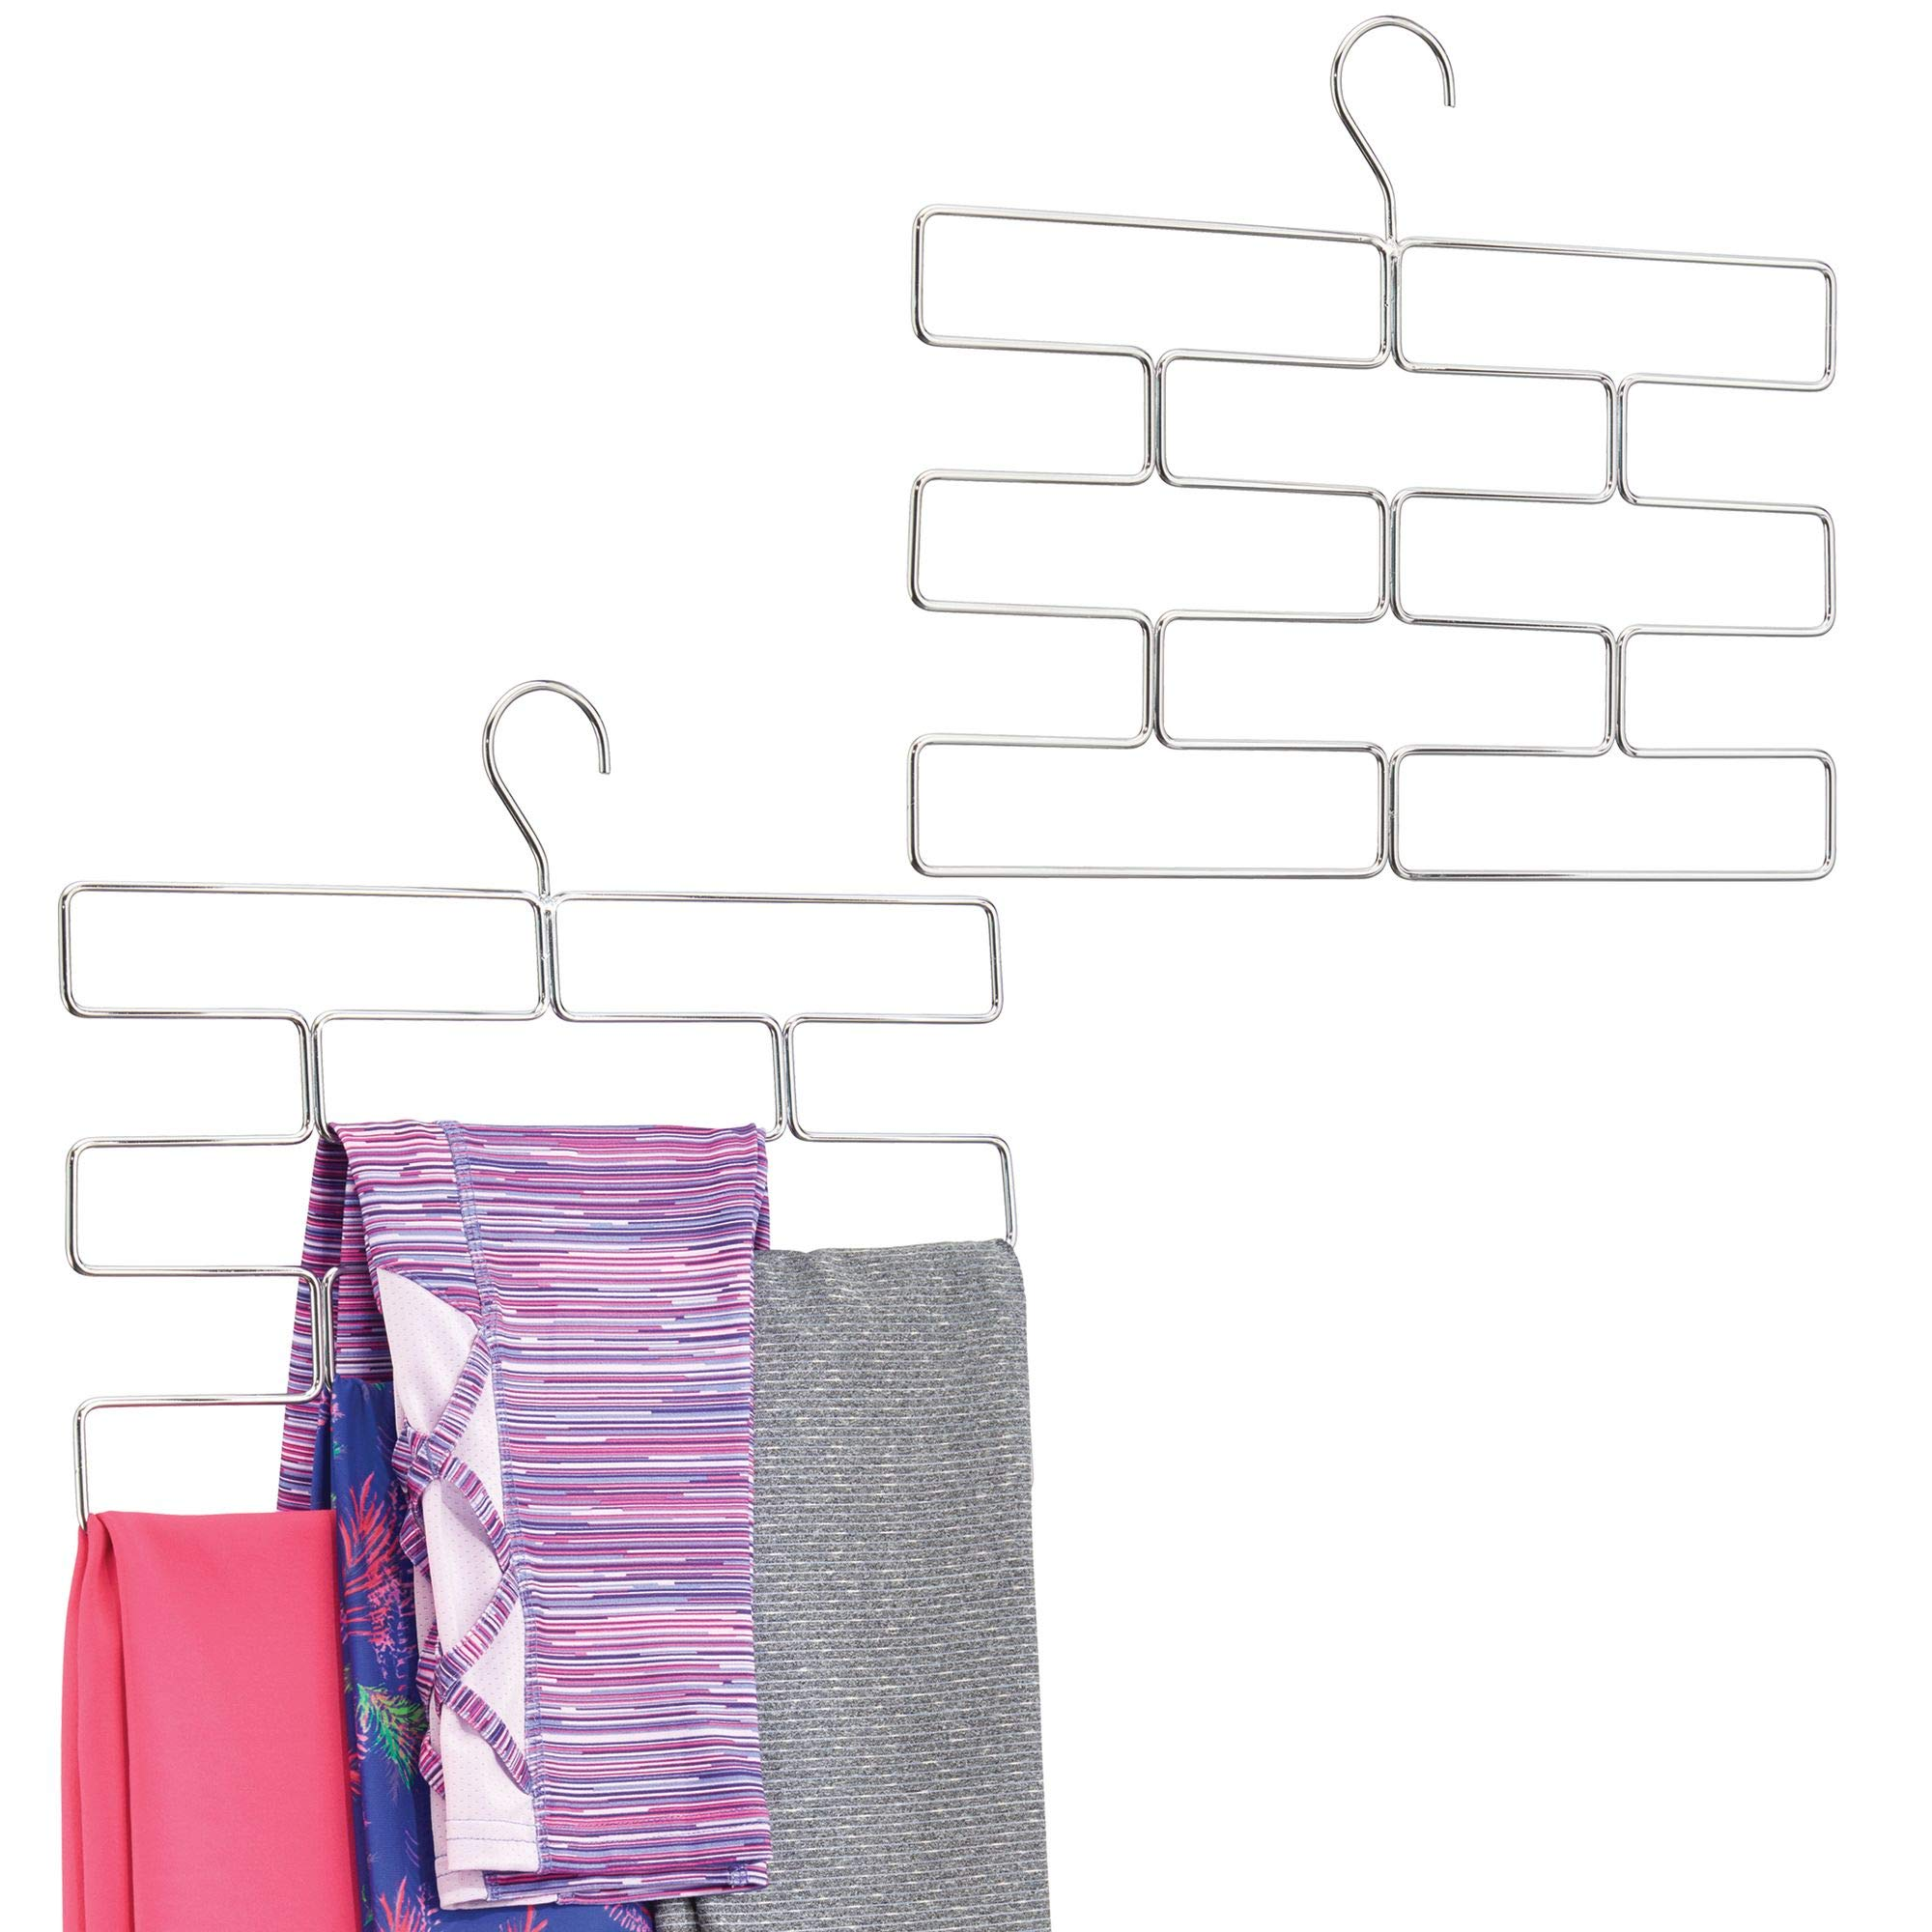 mDesign Modern Metal Closet Rod Hanging Accessory Storage Organizer Rack for Scarves, Ties, Yoga Pants/Leggings, Tank Tops - Snag Free Geometric Design - 8 Sections, Pack of 2, Chrome